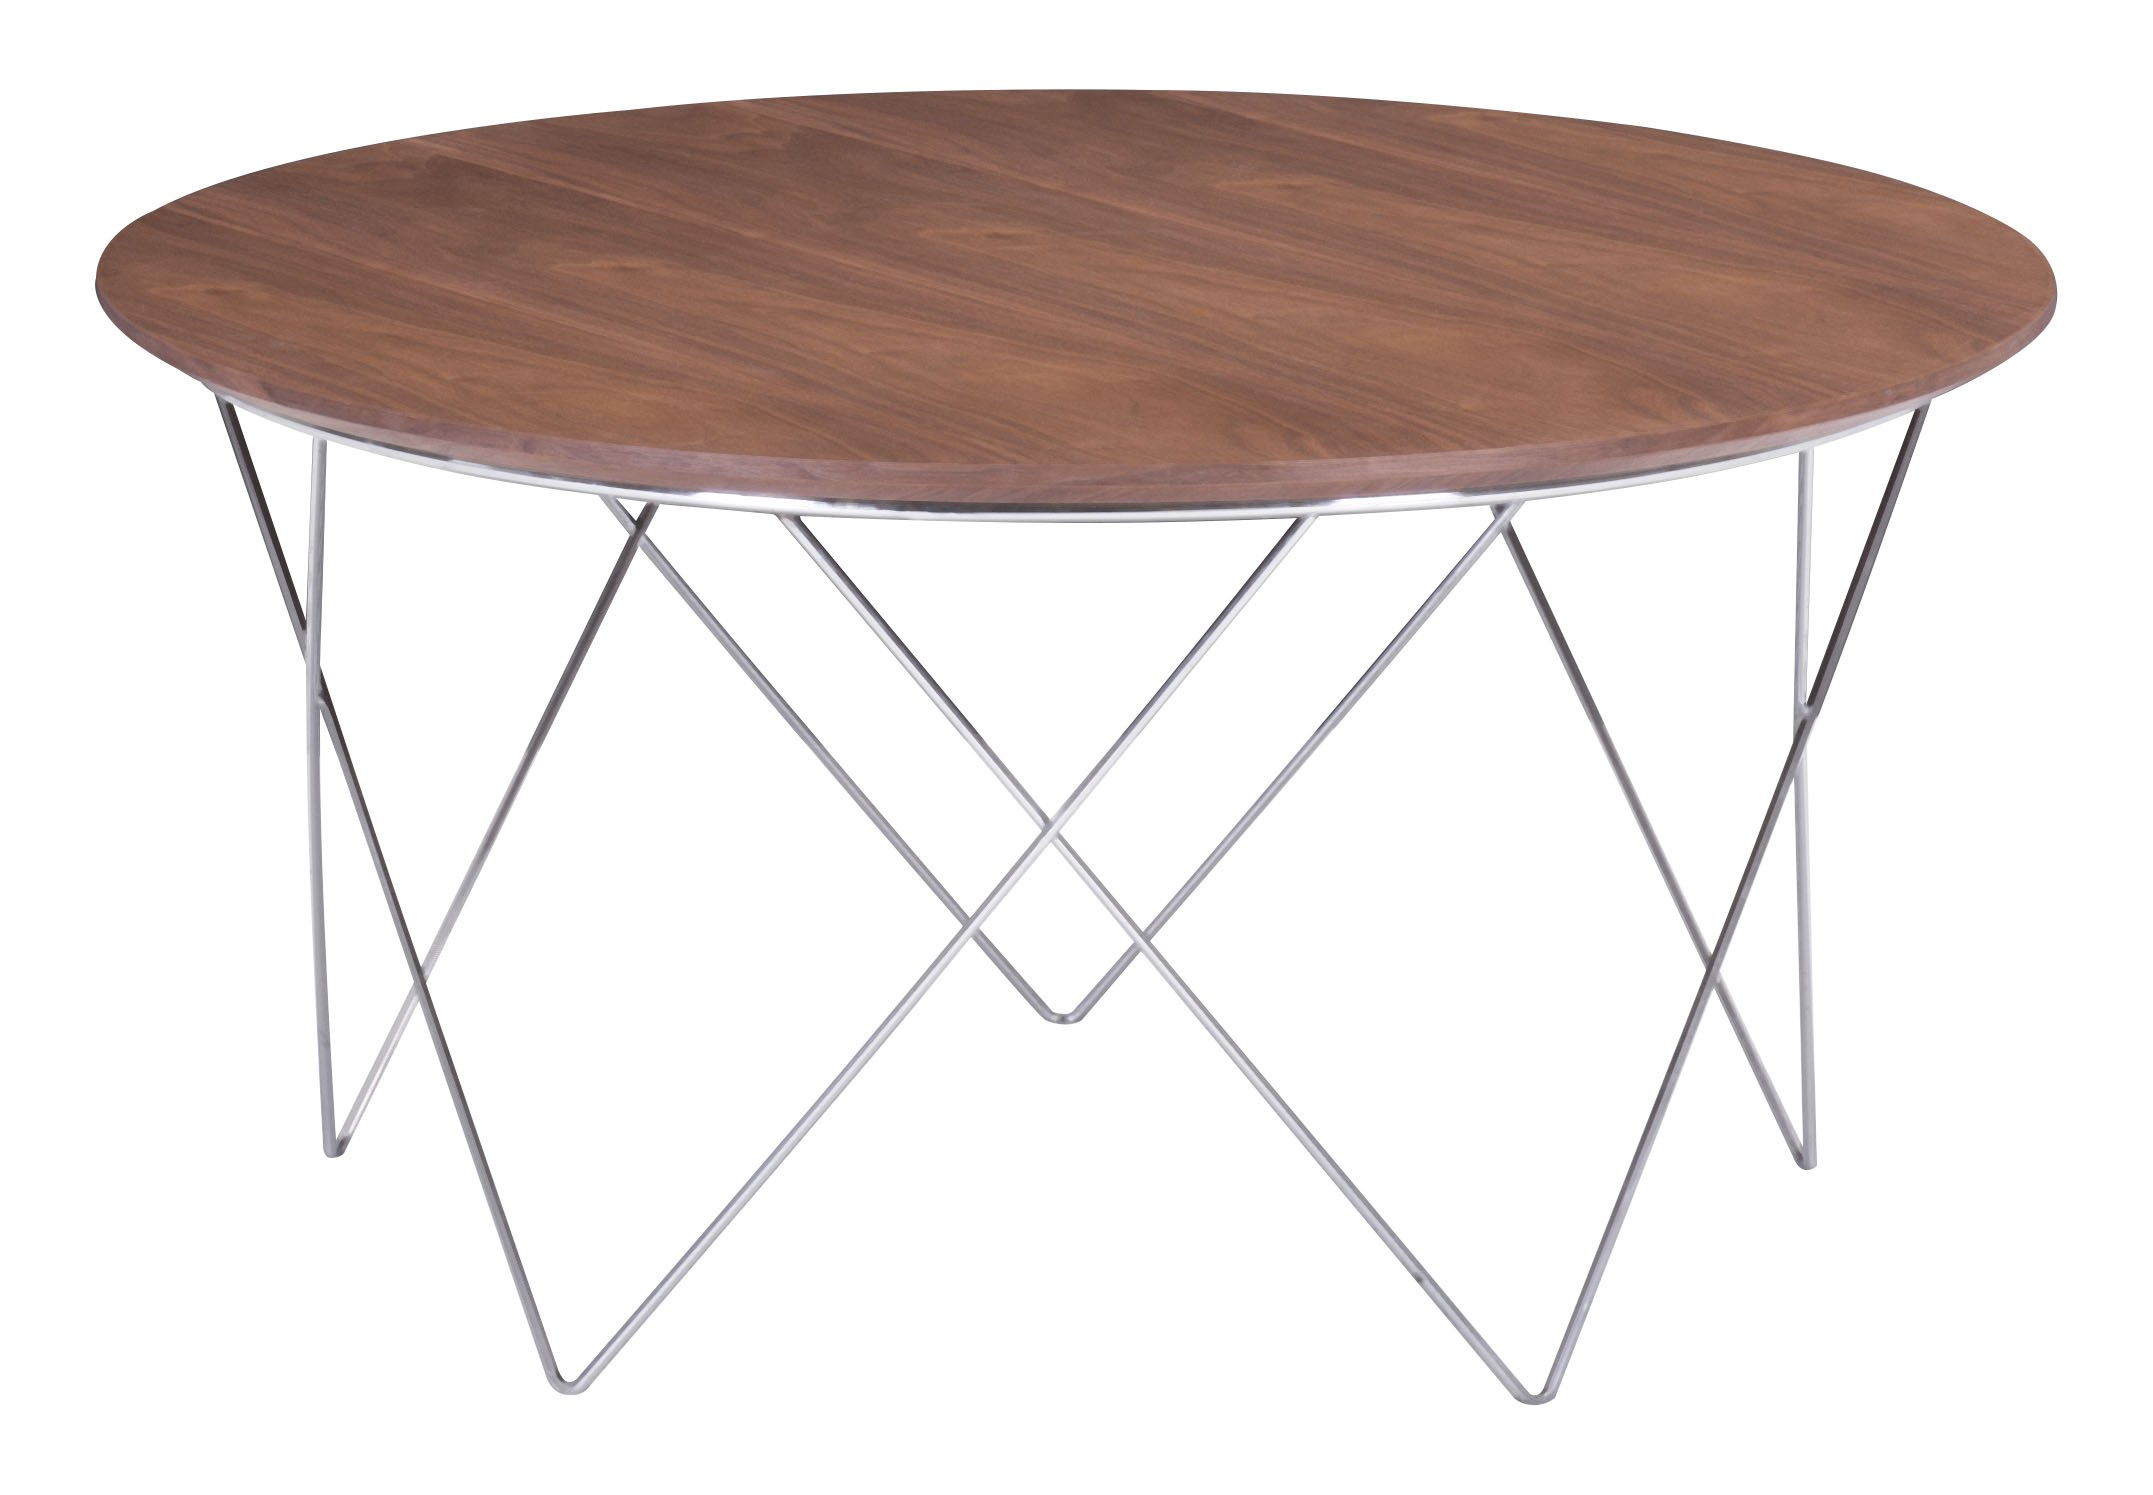 Zuo 404070-ZuoMod Macho Coffee Table, Walnut - Product Type: Coffee table Product Finish: Chromed Steel Year Introduced: 2014 - living-room-furniture, living-room, coffee-tables - 71E%2Btu eXFL -